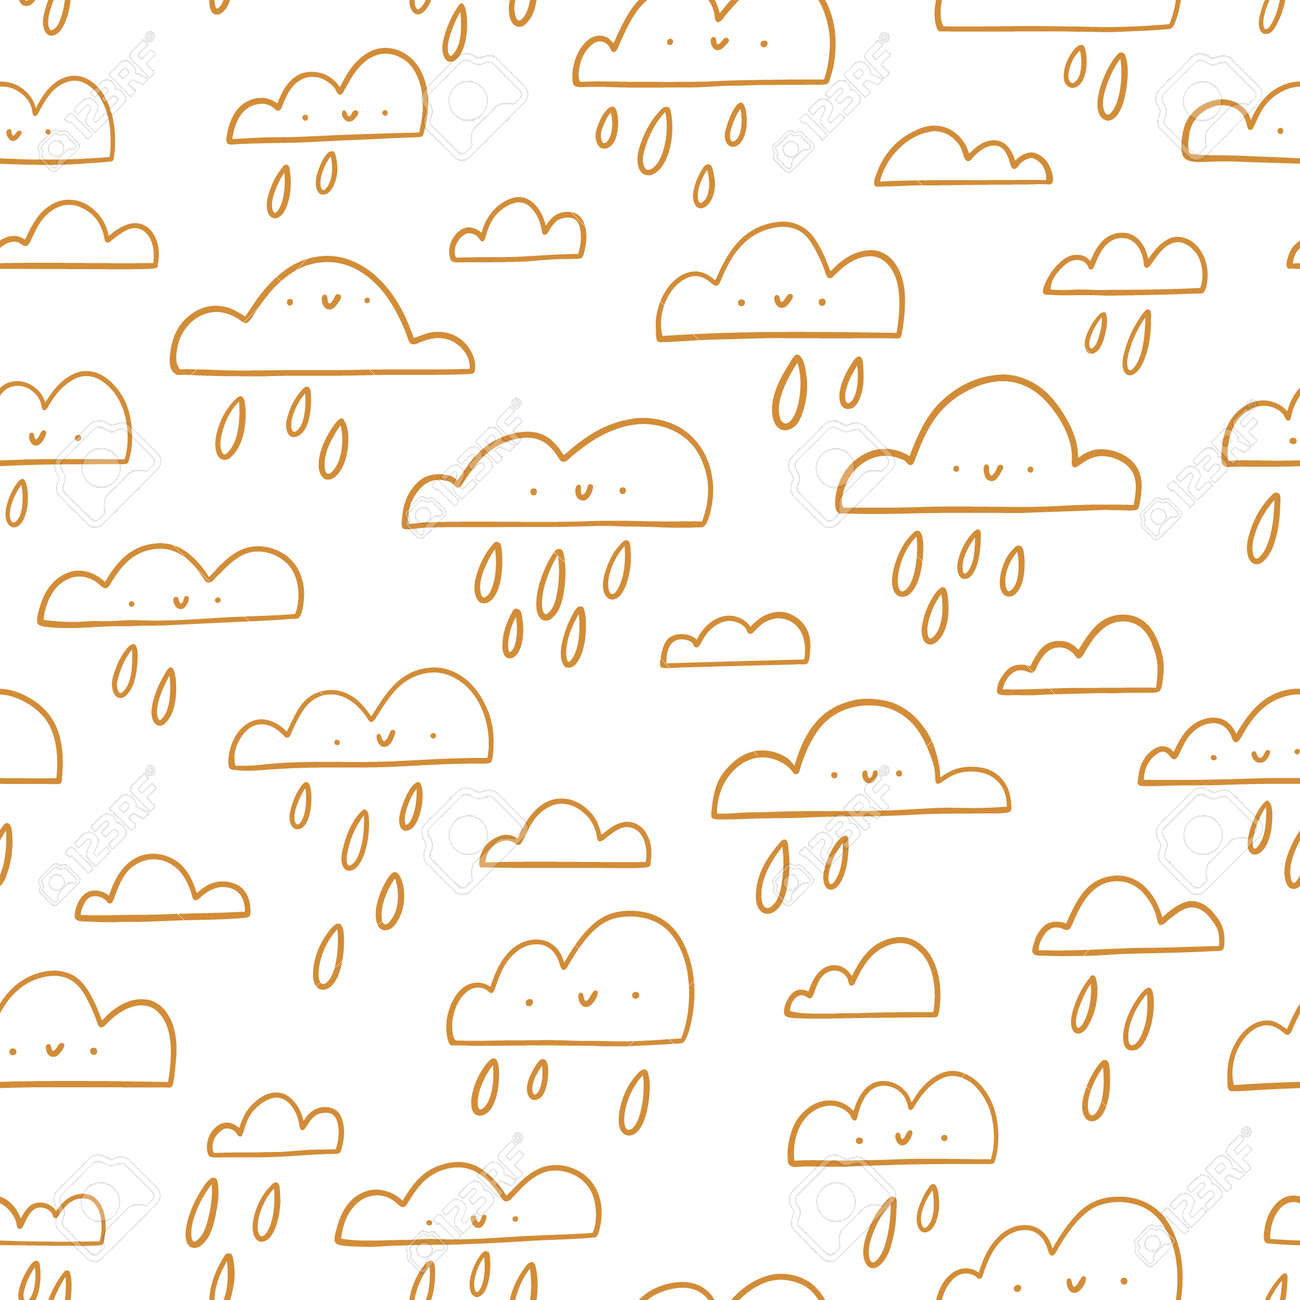 Golden outline happy clouds, rainy weather, vector seamless pattern illustration - 161289746